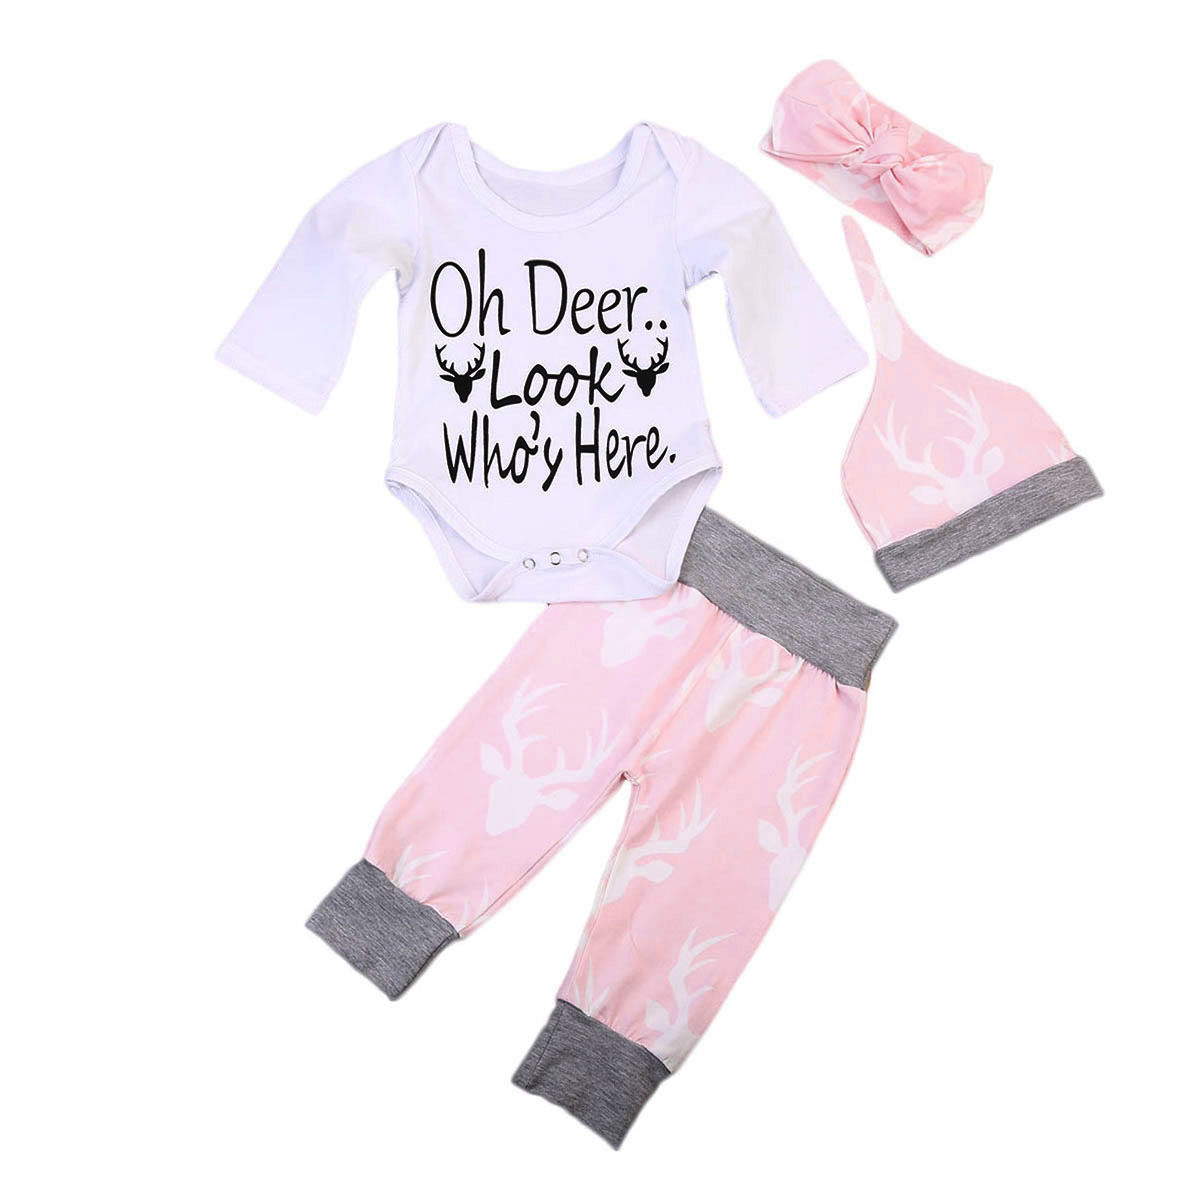 4pcs Set Newborn Baby Boy Girls Tops Romper+Long Pants baby girl baby girl clothes Outfits Clothes